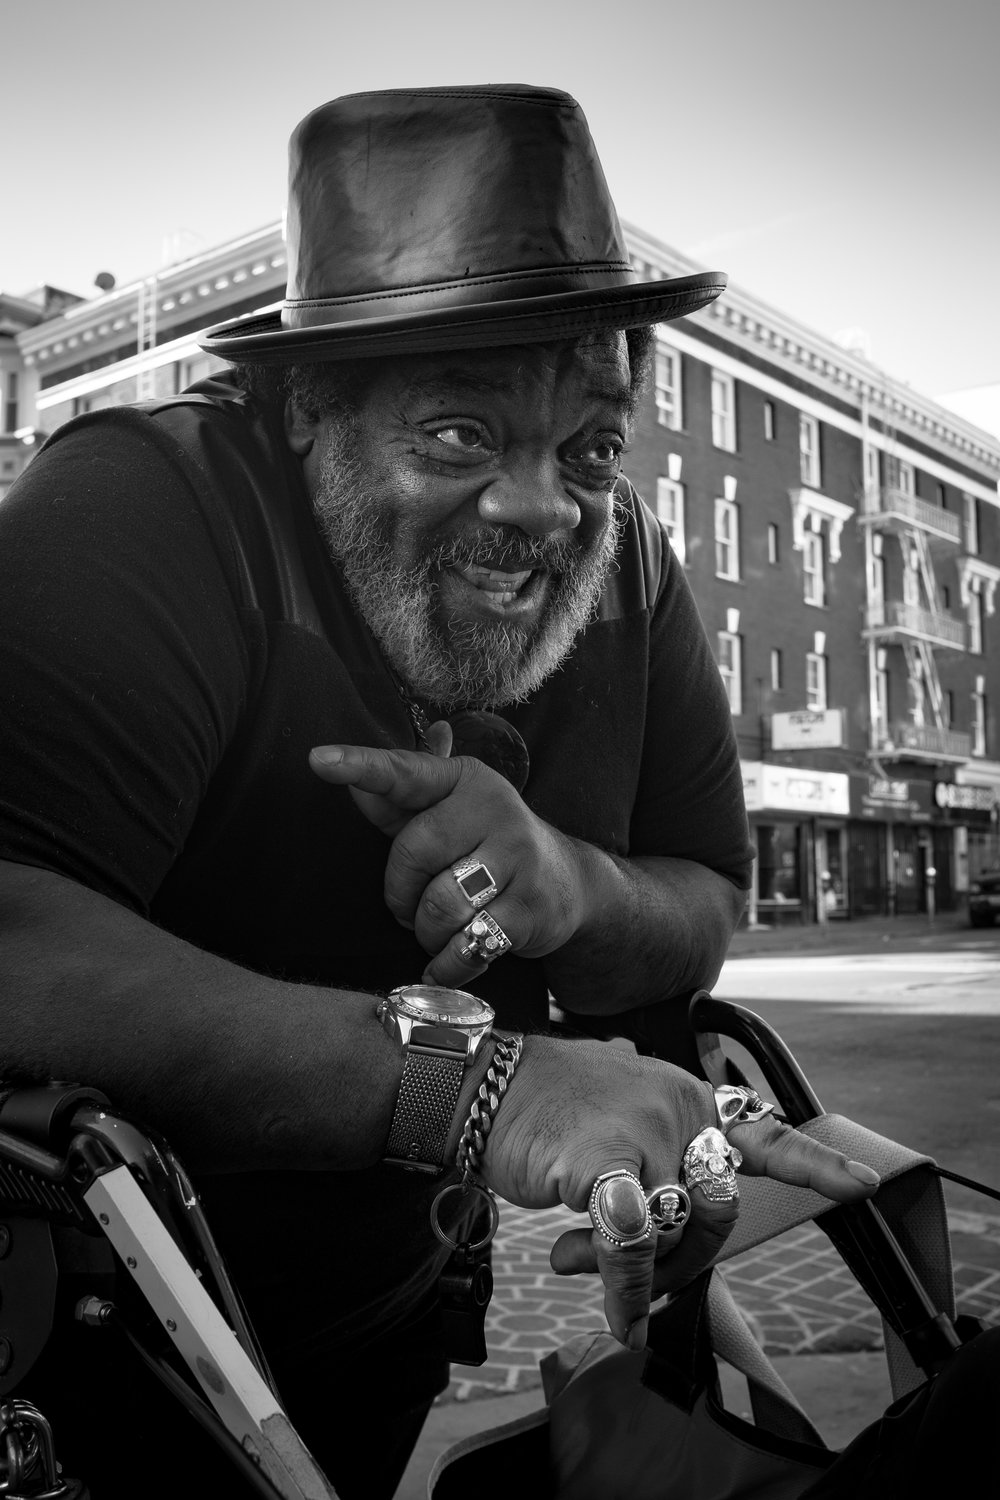 Man with rings Tenderloin.jpg